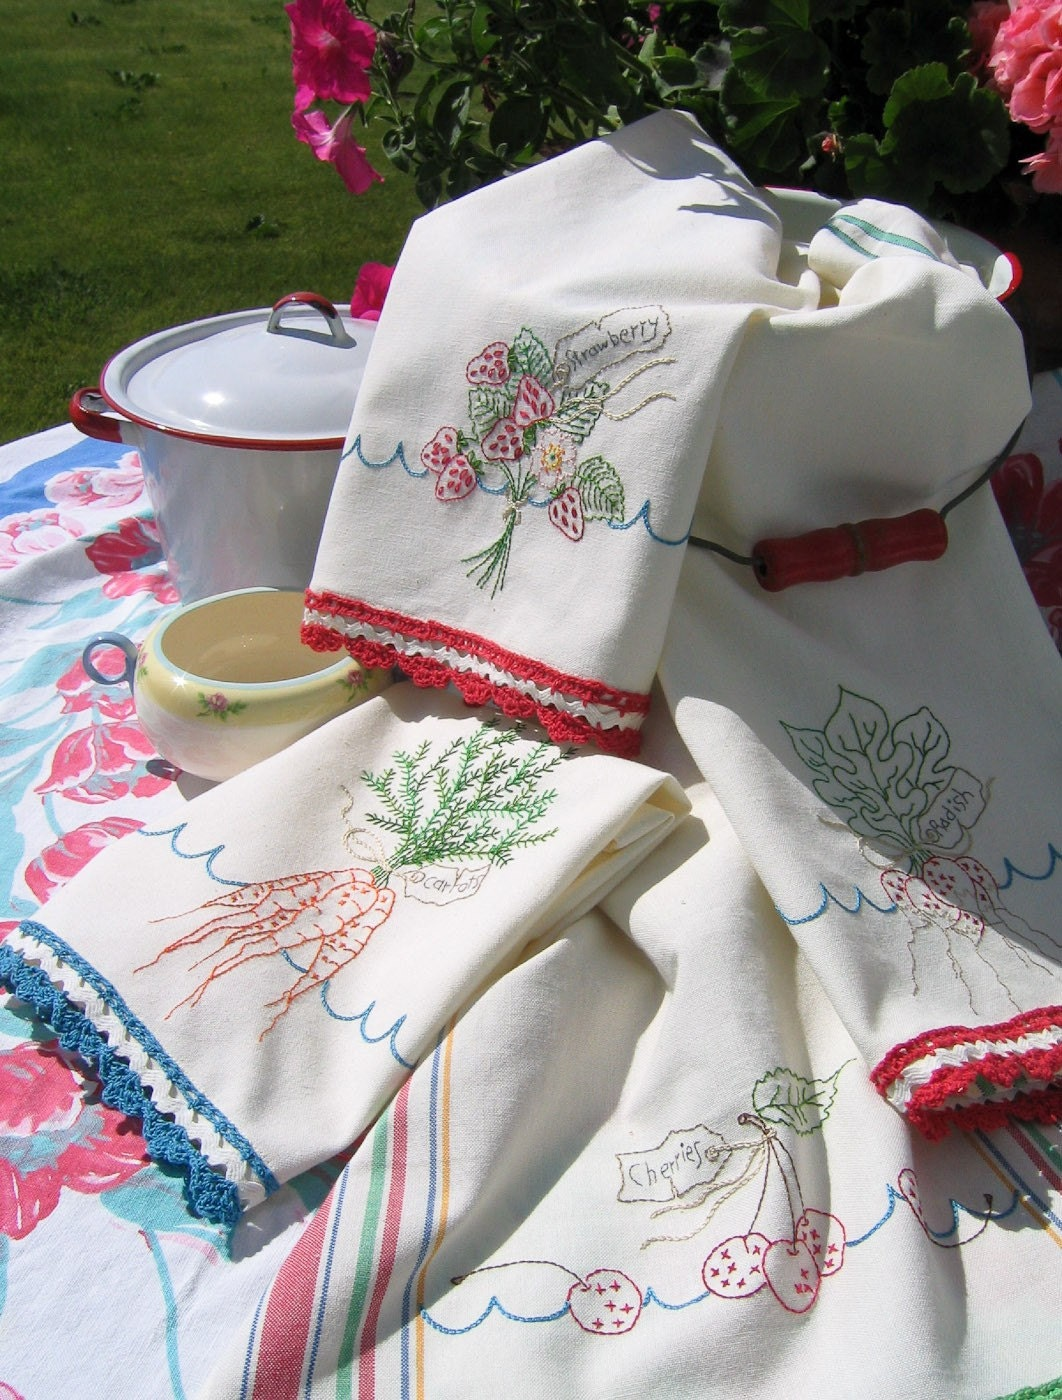 Victory Garden Tea Dish Towels 254 Hand Embroidery Pattern